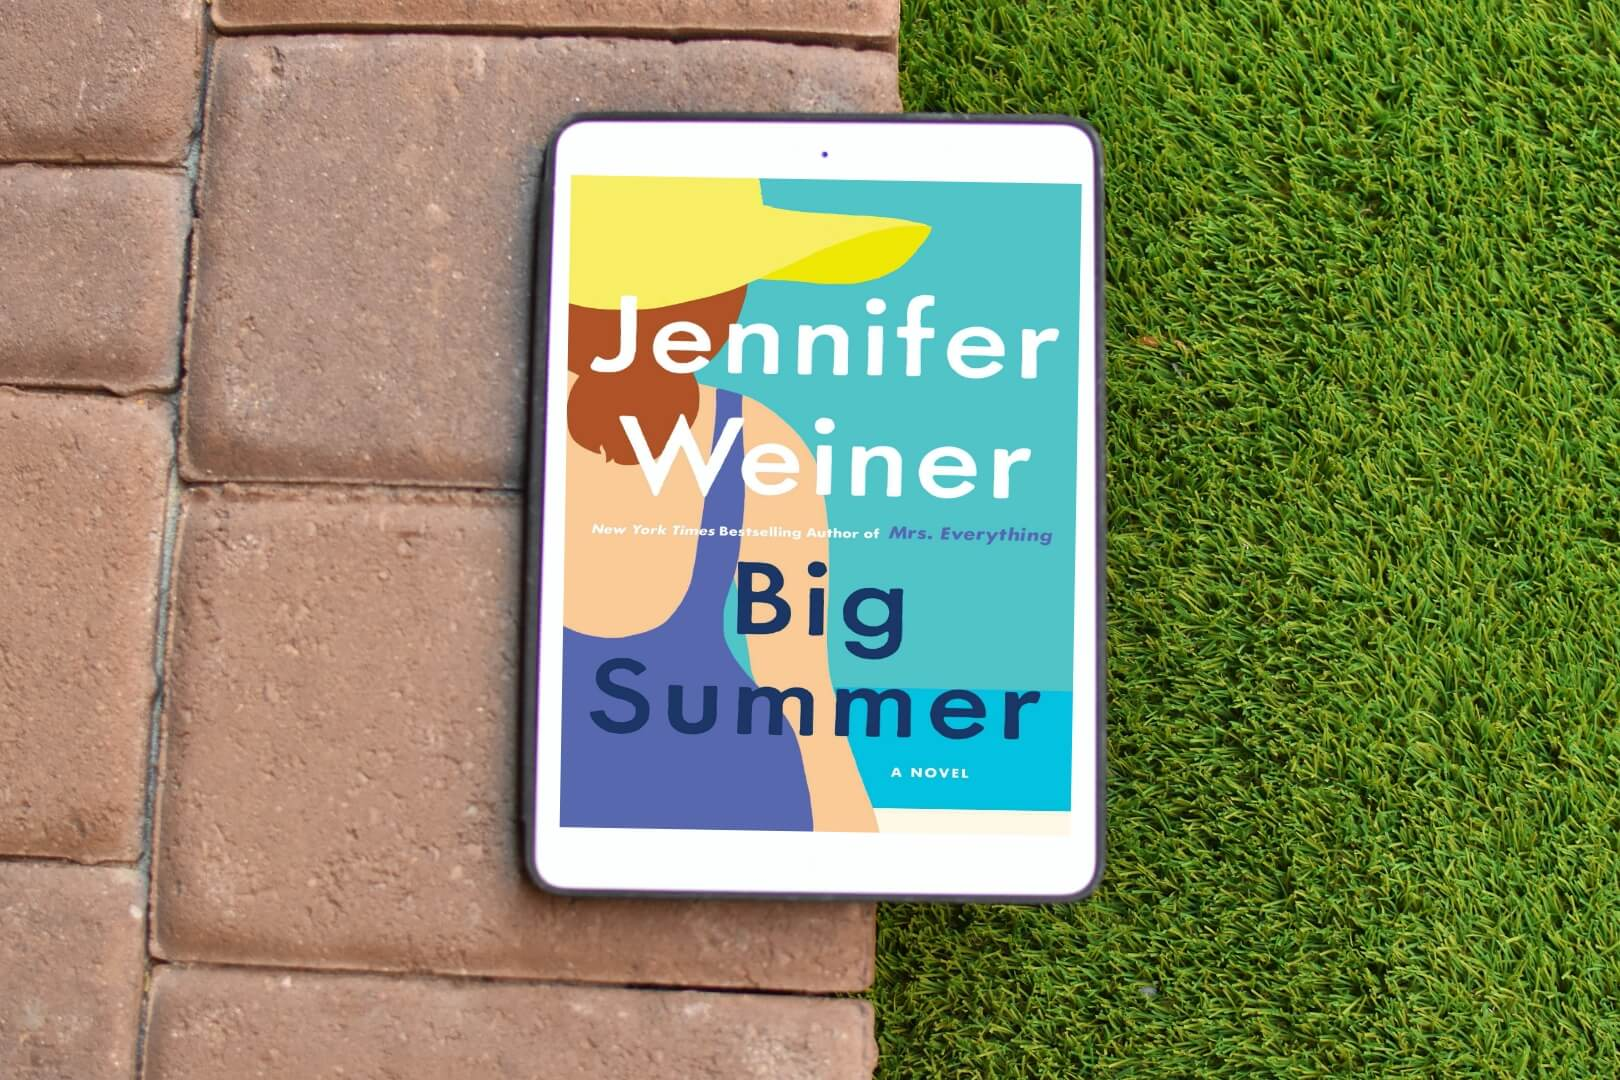 big summer review - book club chat